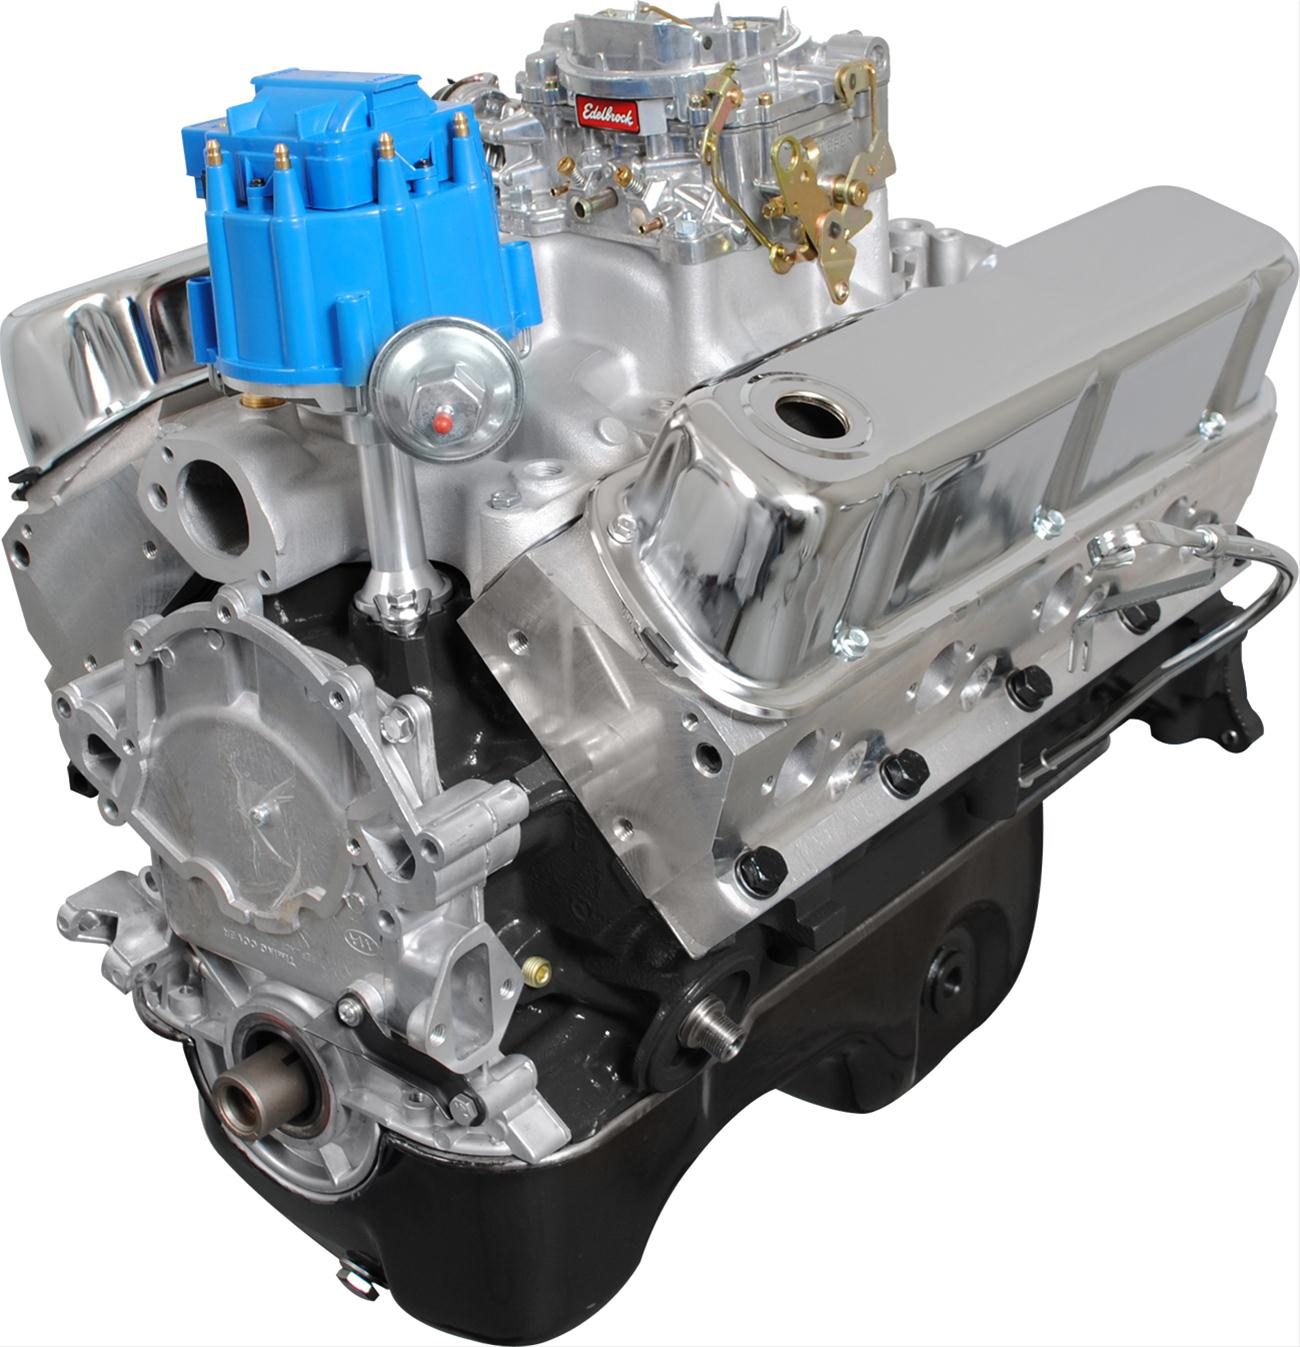 hight resolution of blueprint engines ford 331 stroker 375 hp value power carbureted long block crate engines bp3315ctc free shipping on orders over 99 at summit racing